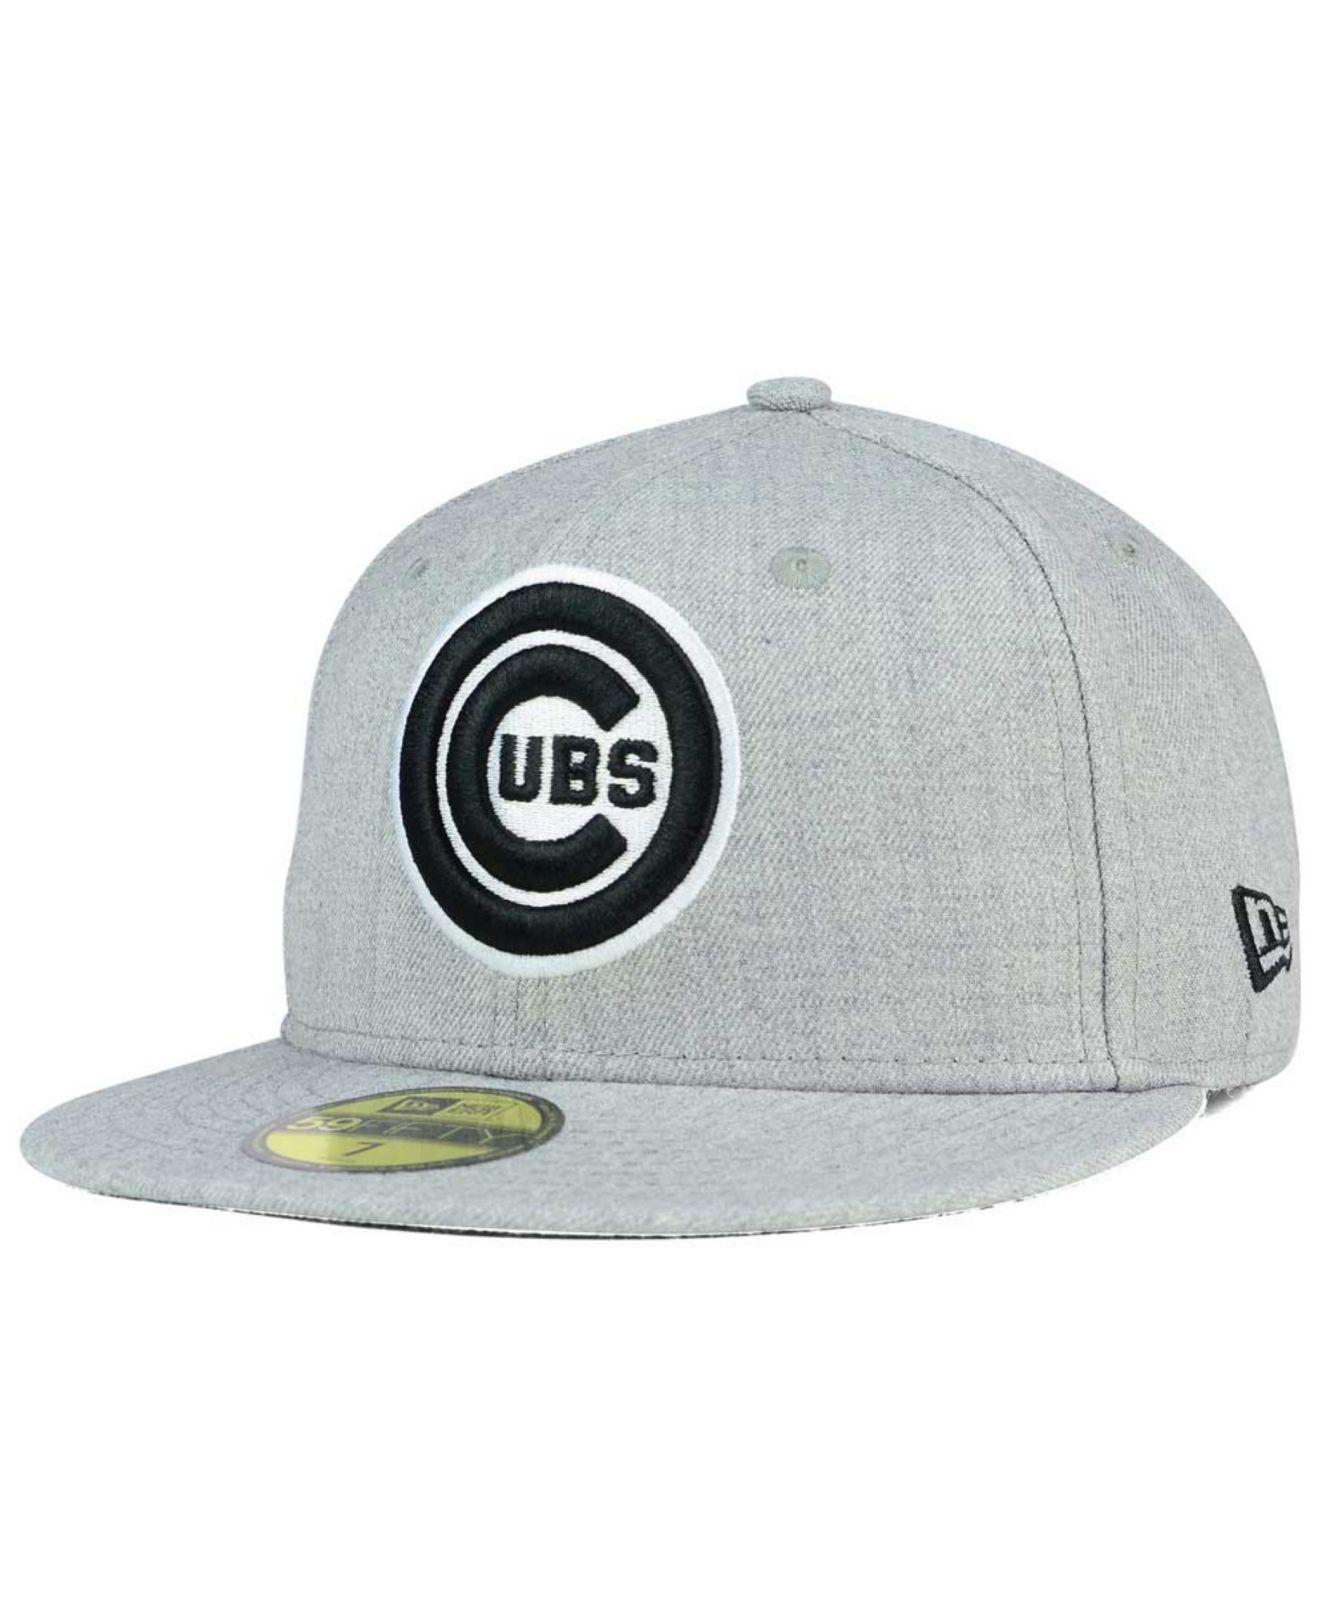 ba387fbcfae Lyst - KTZ Chicago Cubs Heather Black White 59fifty Cap in Gray for Men